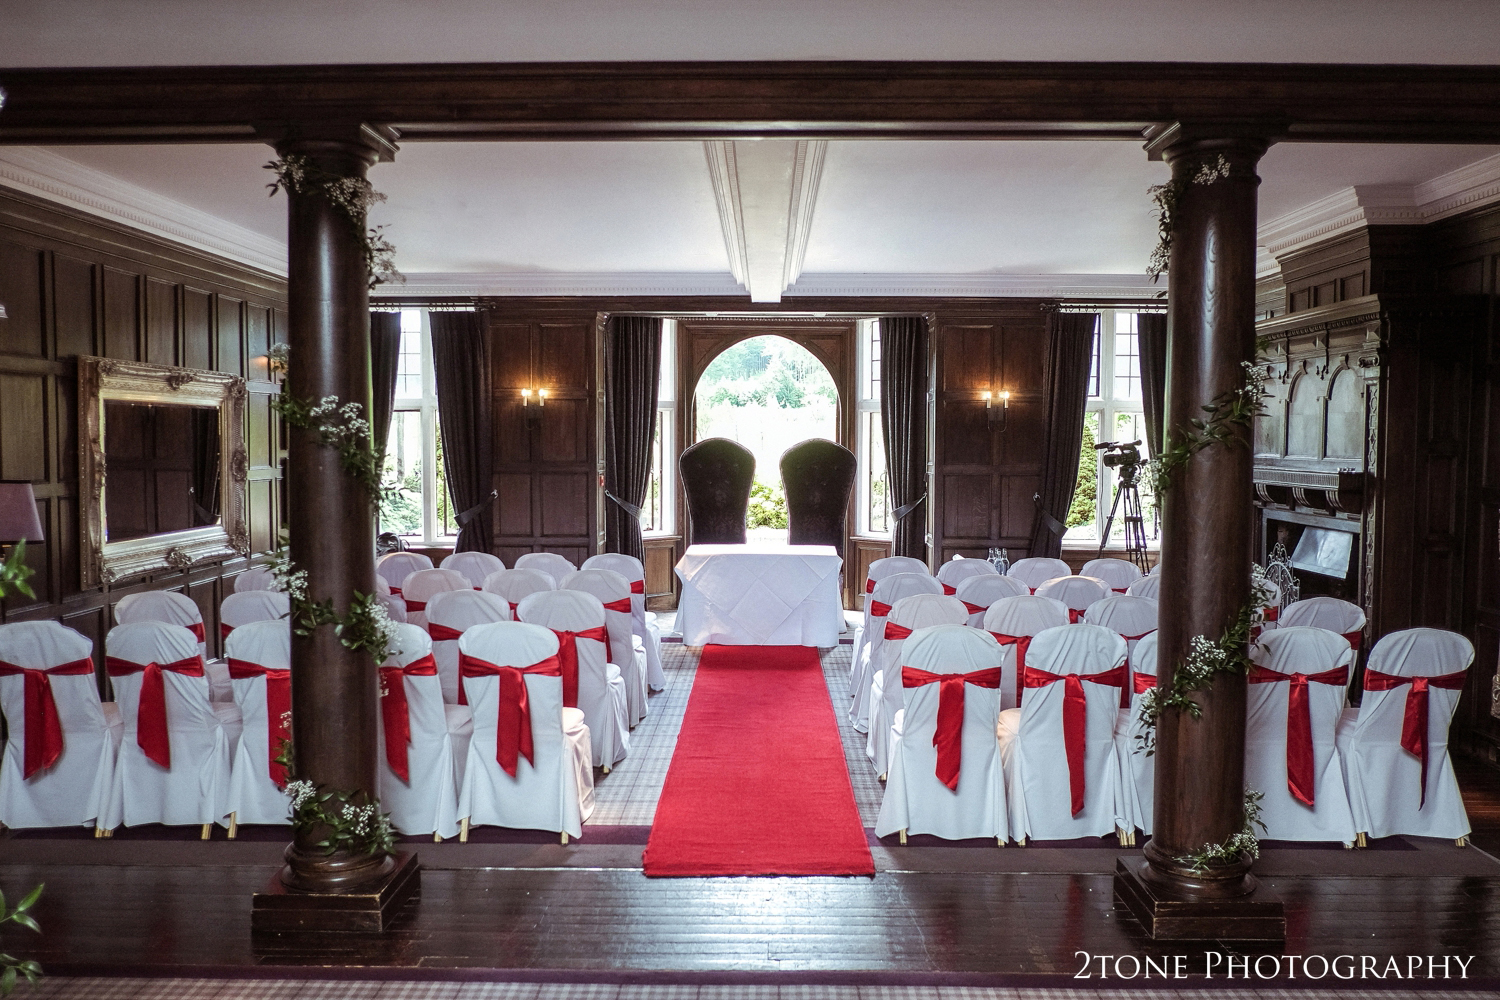 The wedding day took place at Q Hotel's Slaley Hall, near Hexham in Northumberland. In recent years colour trends have been more towards the neutral shades, sages, blush, taupes as well aspurples. It really made a refreshing change to see the room dressed in red and the colour suited the Slaley hall beautifully.